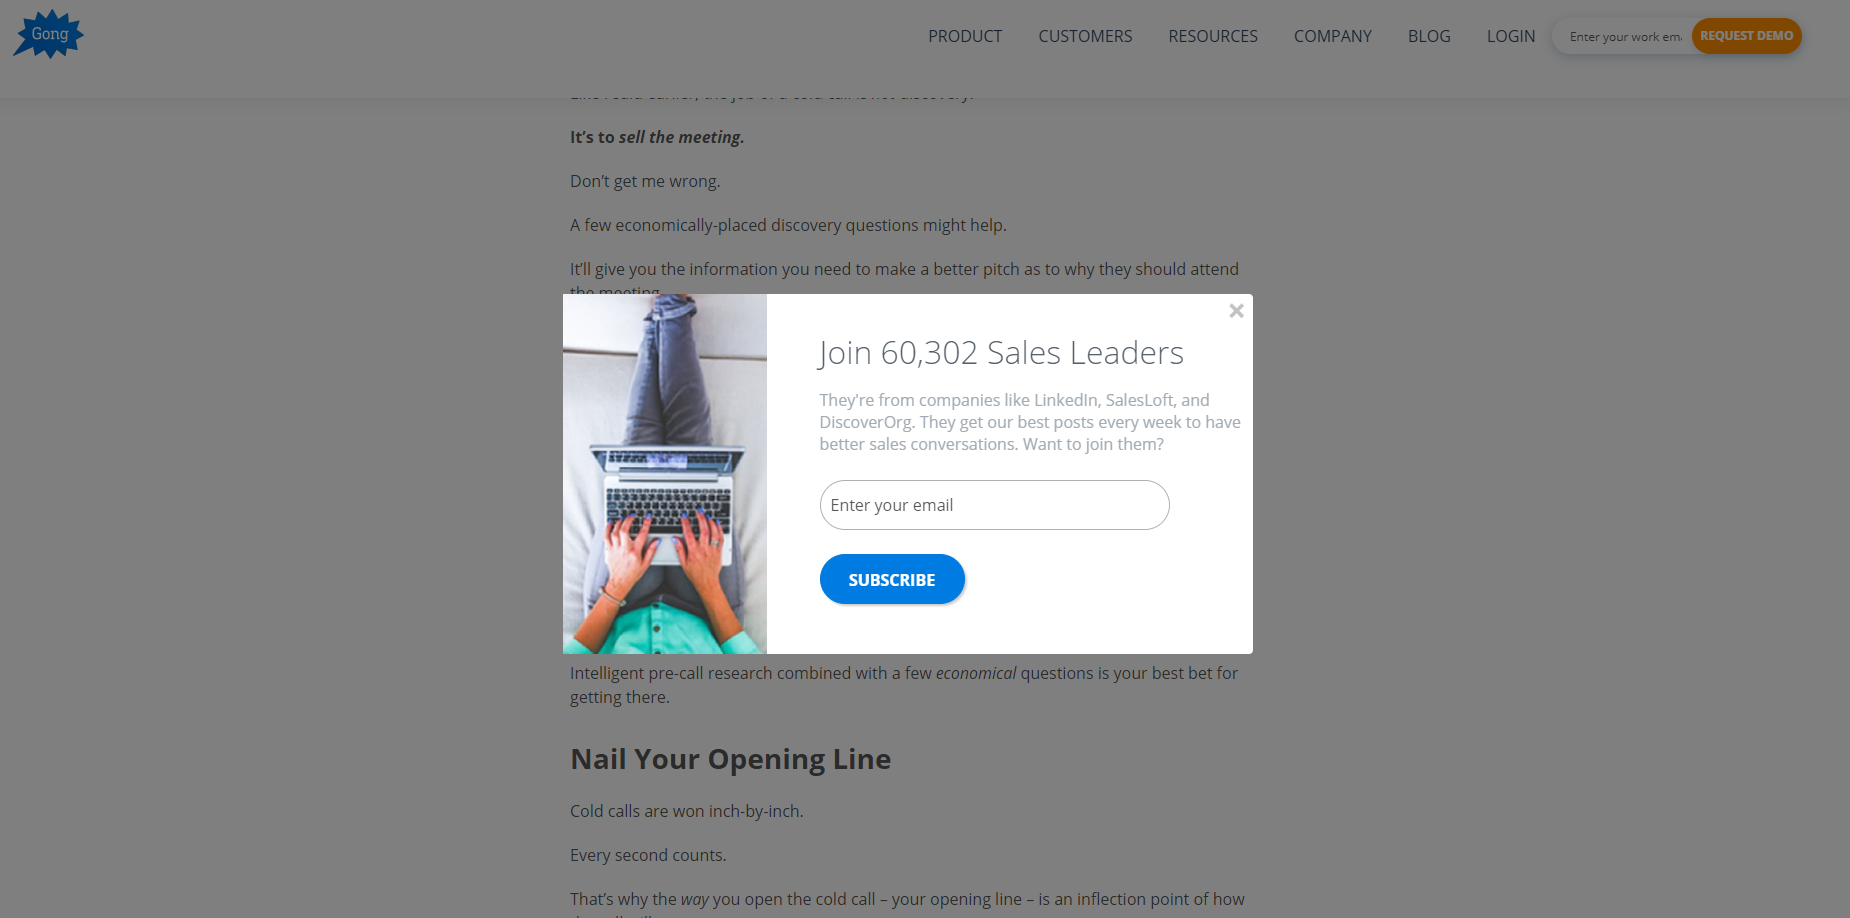 A popup inviting to join 60,000 sales leaders